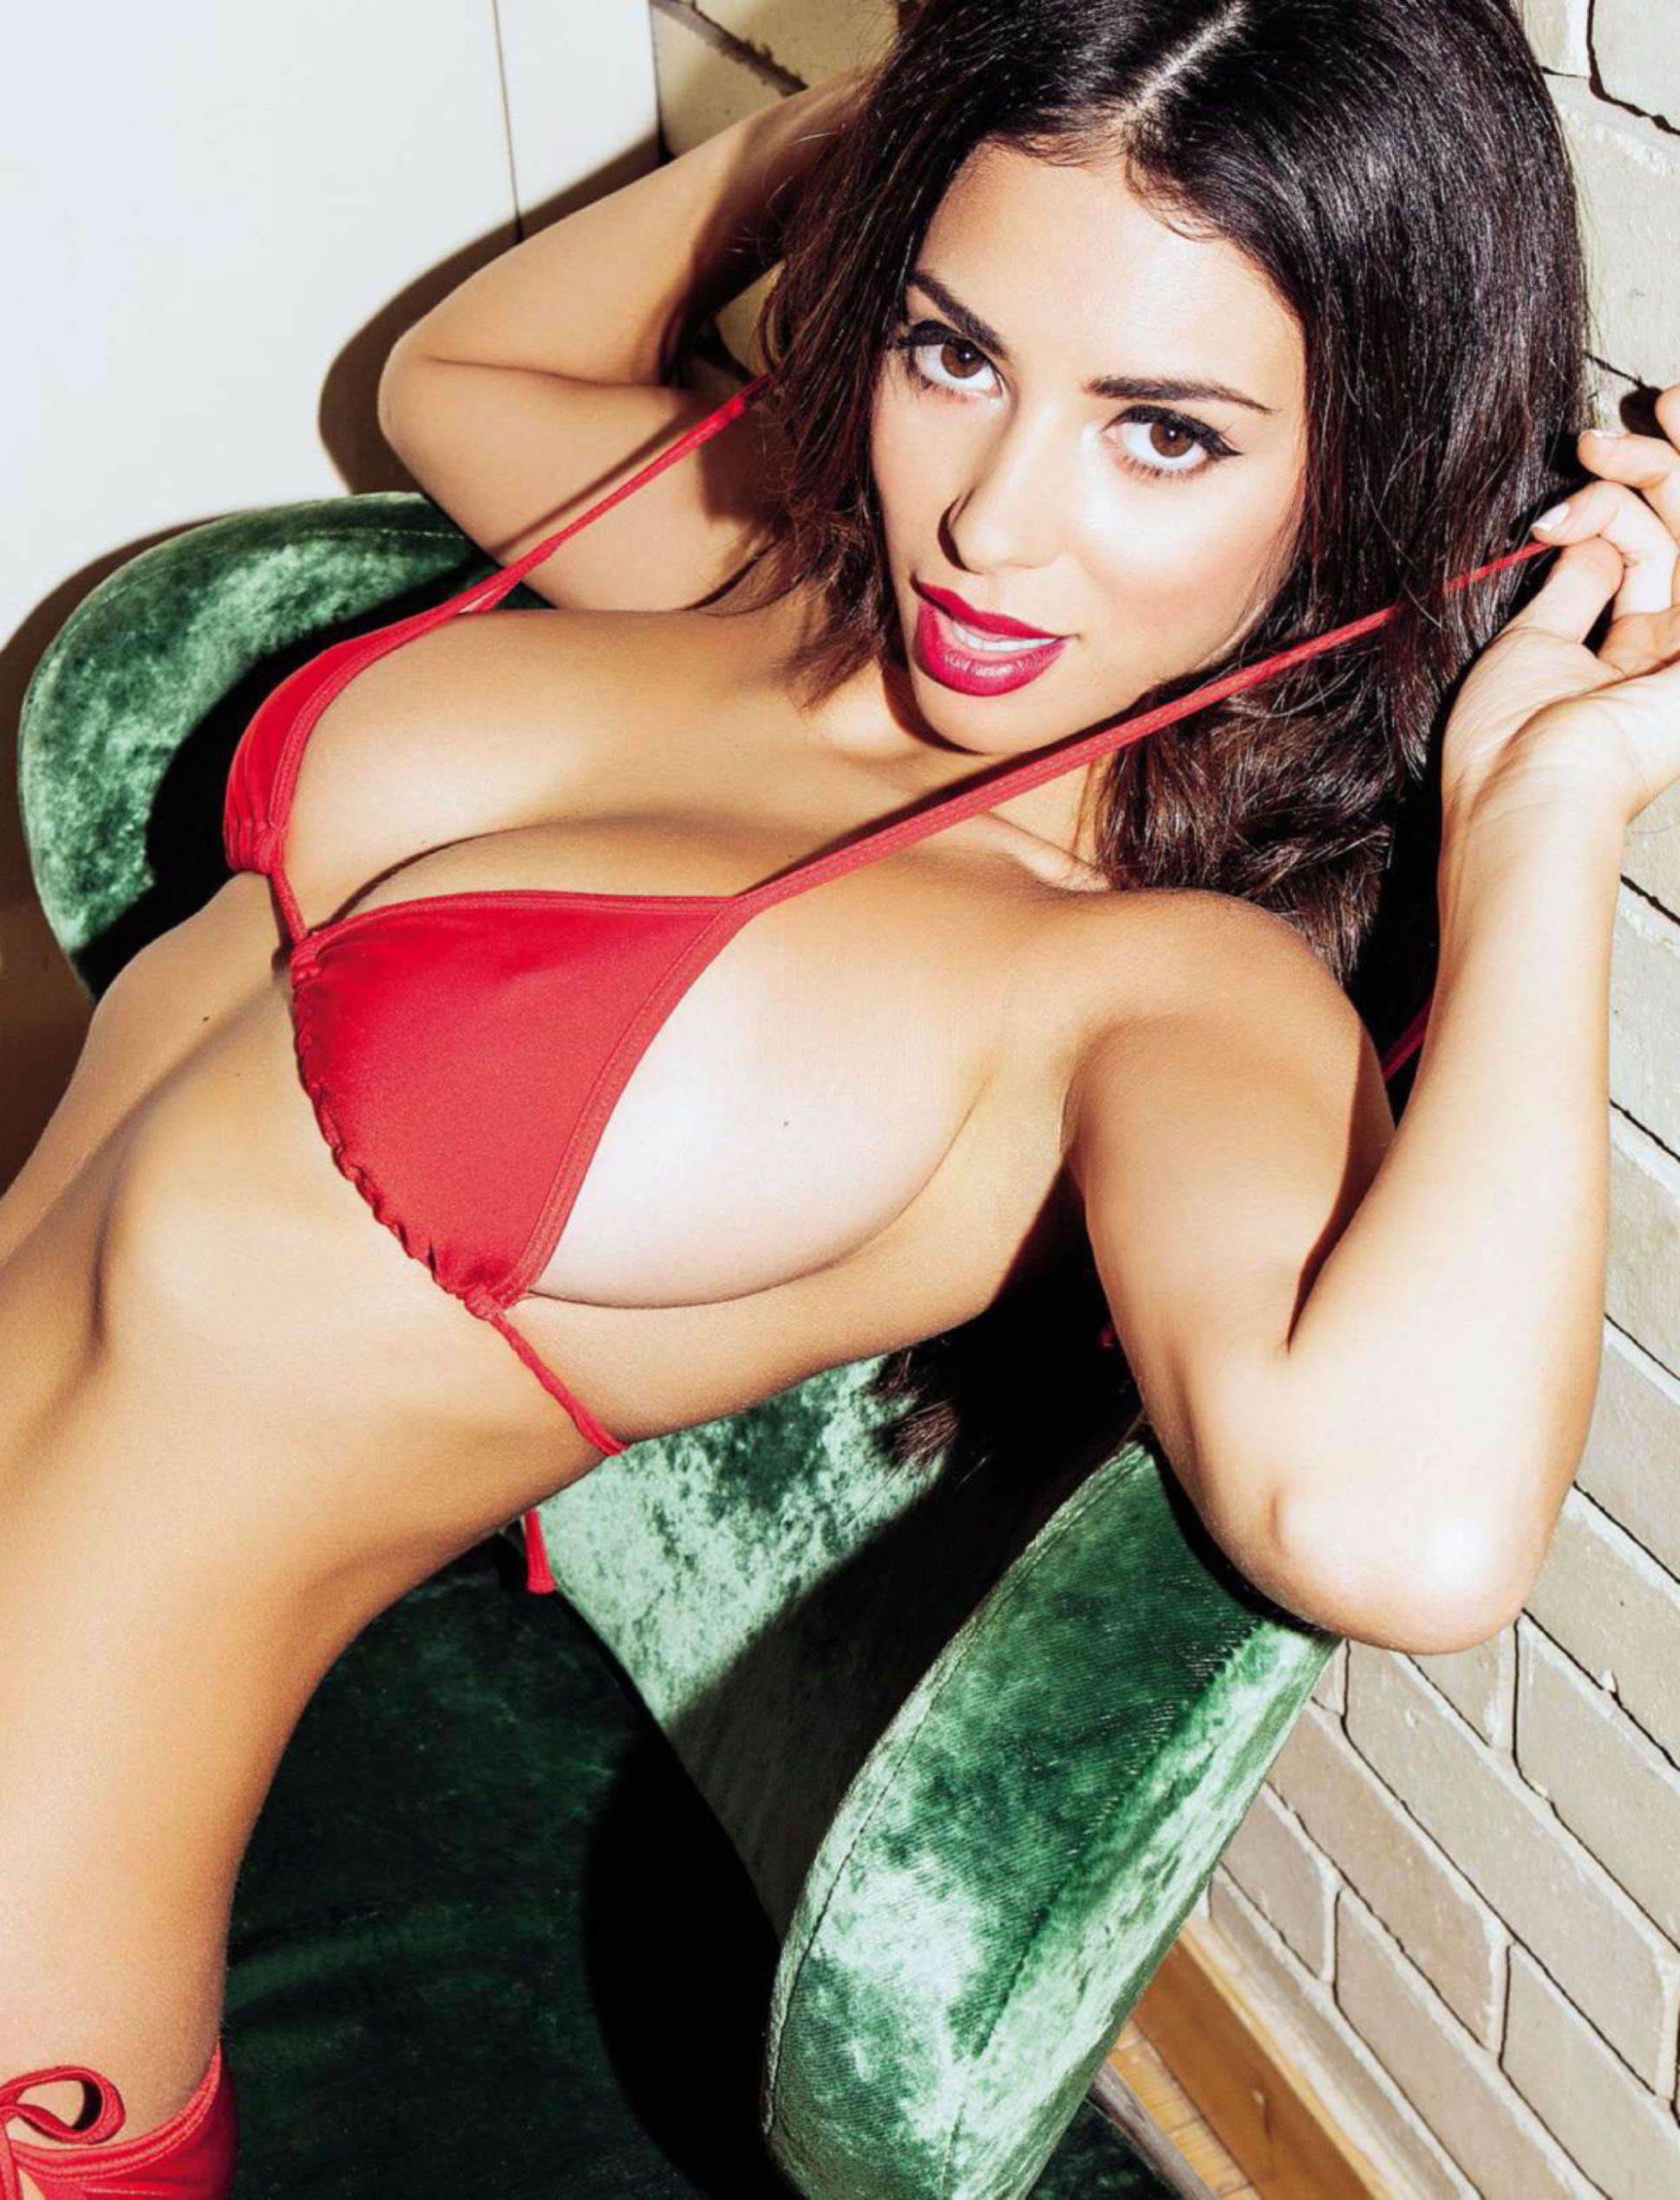 Busty fhm in woman